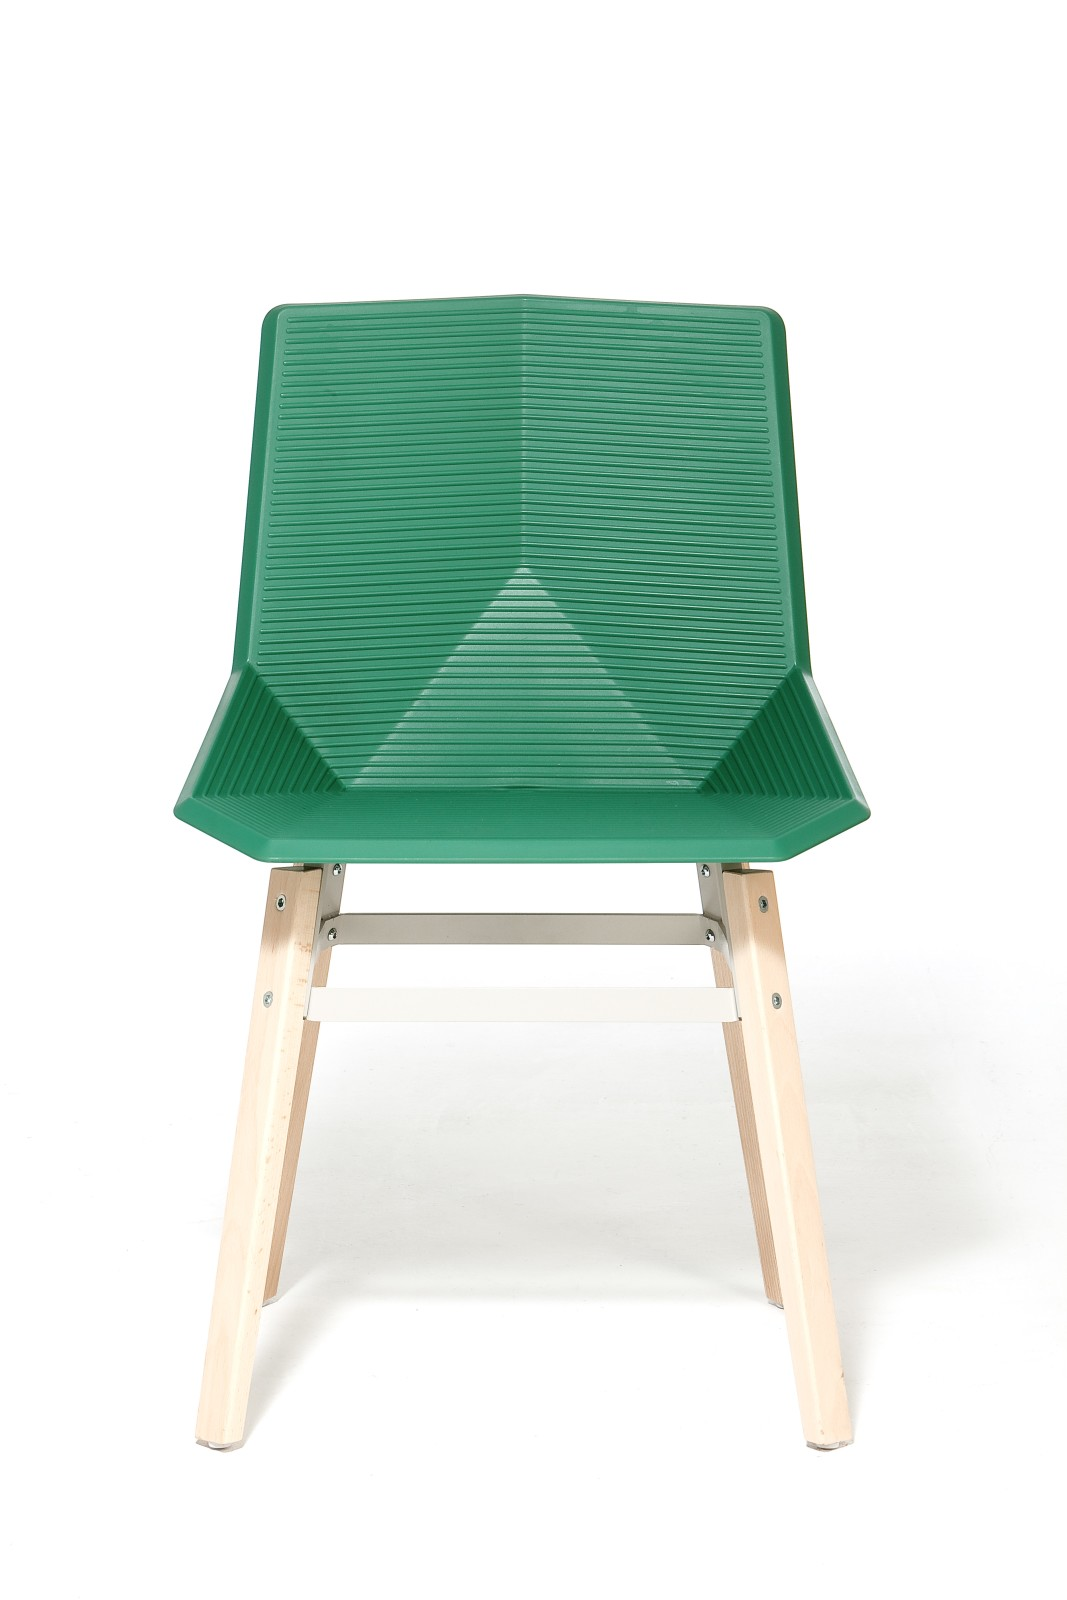 Green Eco Wooden Dining Chair Green Seat